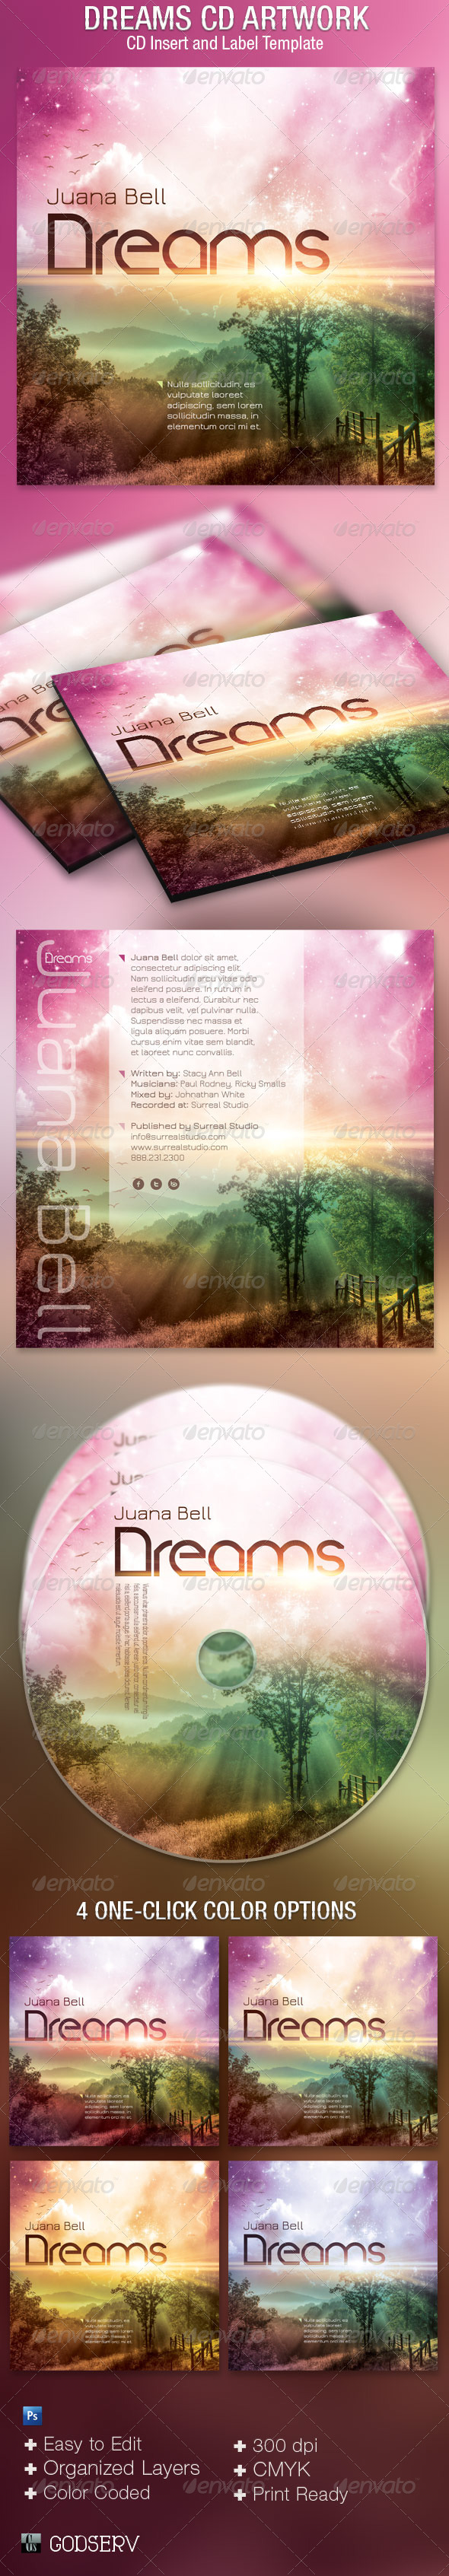 Dreams CD Artwork Template - CD & DVD Artwork Print Templates